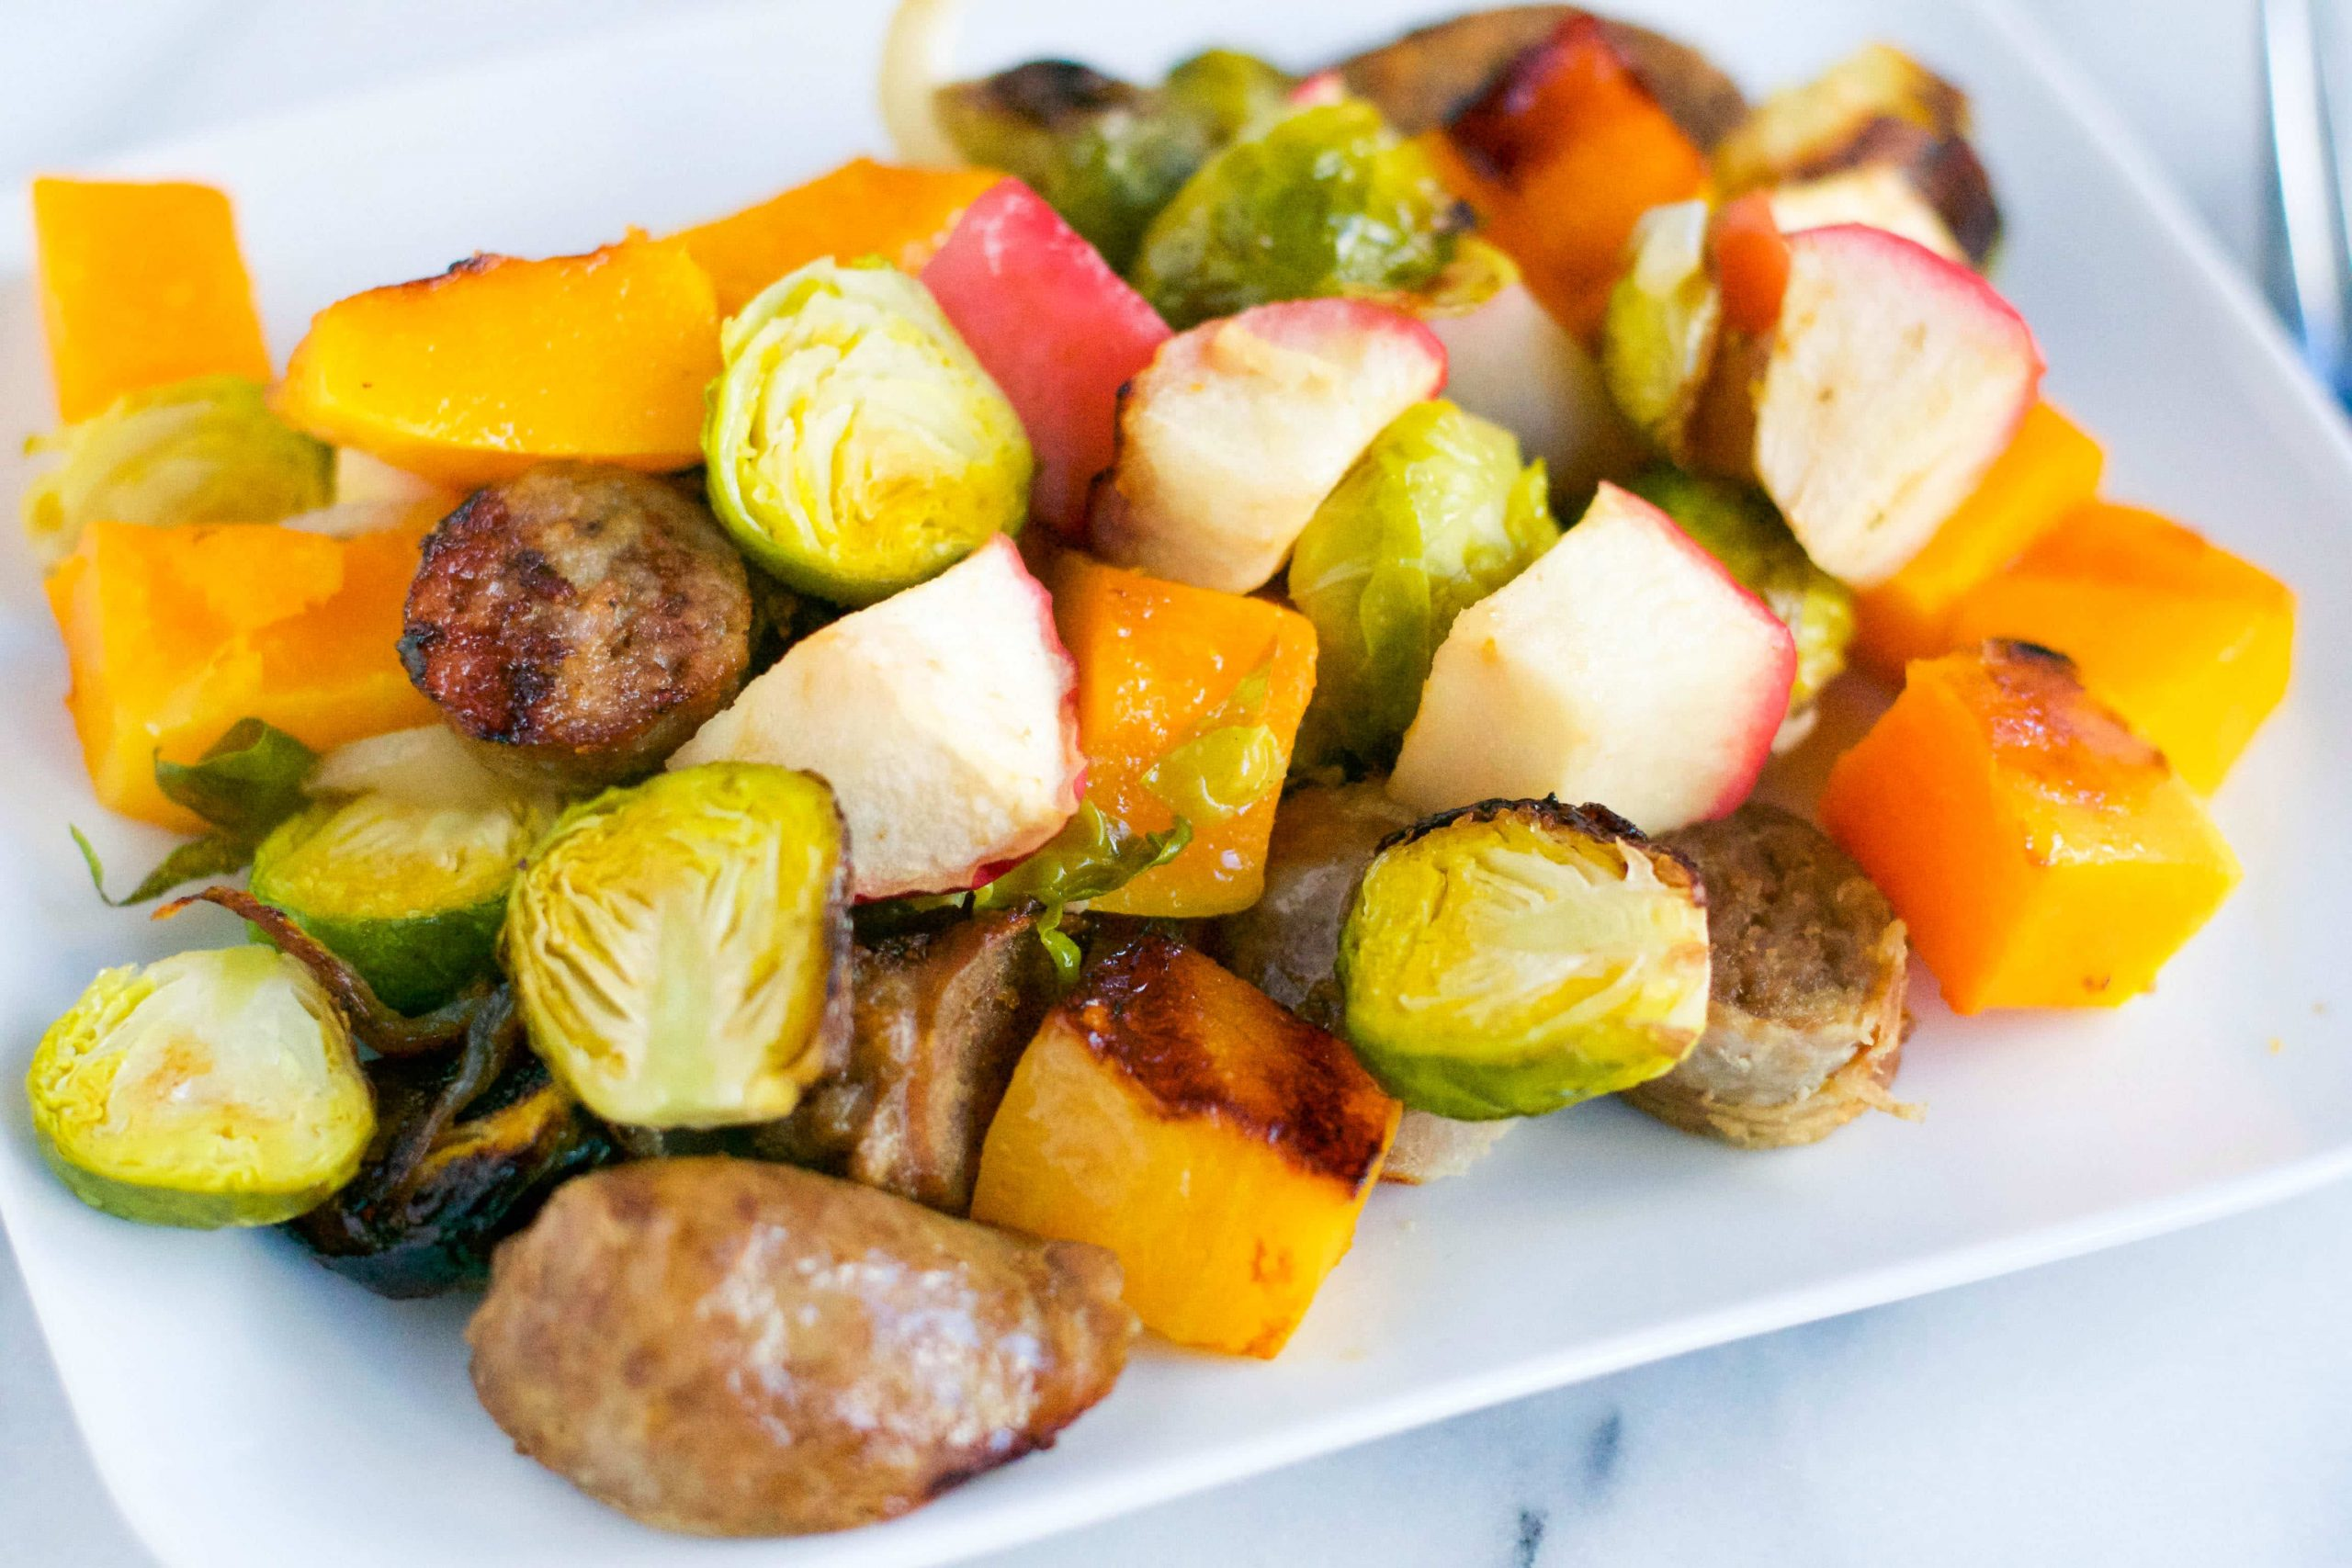 Roasted Chicken Sausage, Butternut Squash and Apples - gluten-free, dairy-free, paleo, whole 30 approved - A Dash of Megnut